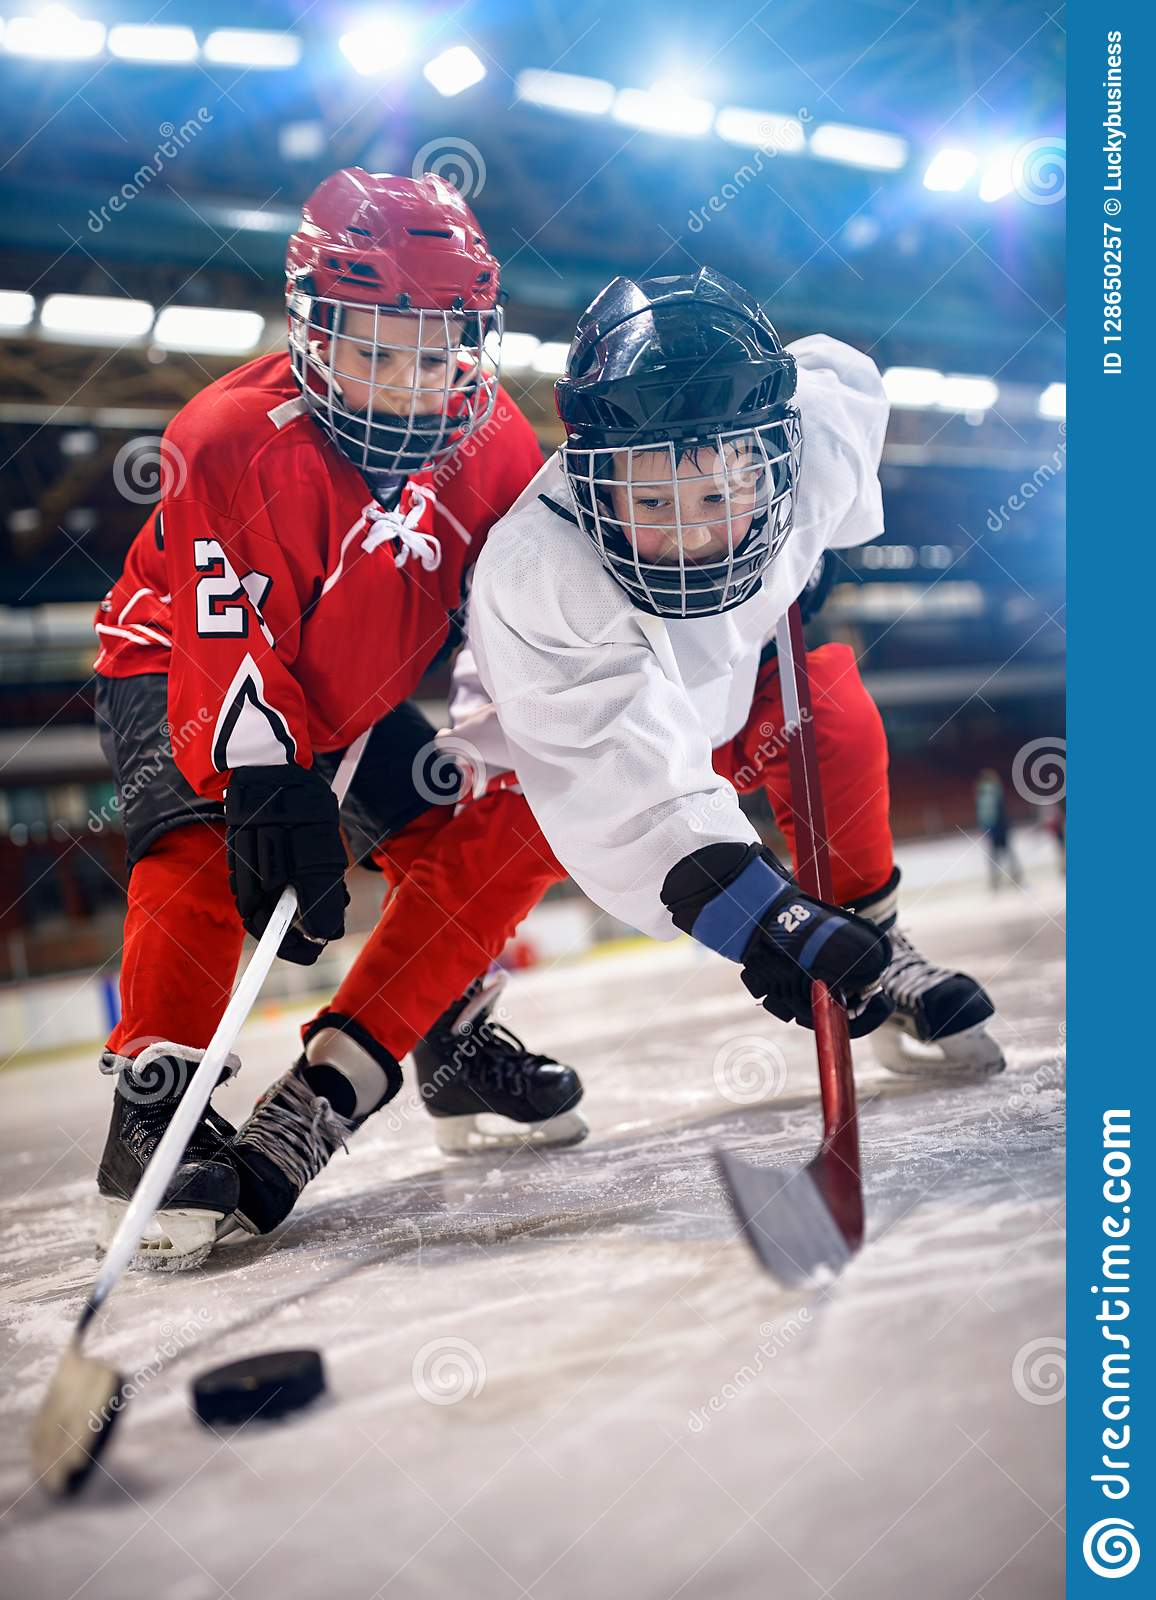 Ice hockey player in sport action on the ice